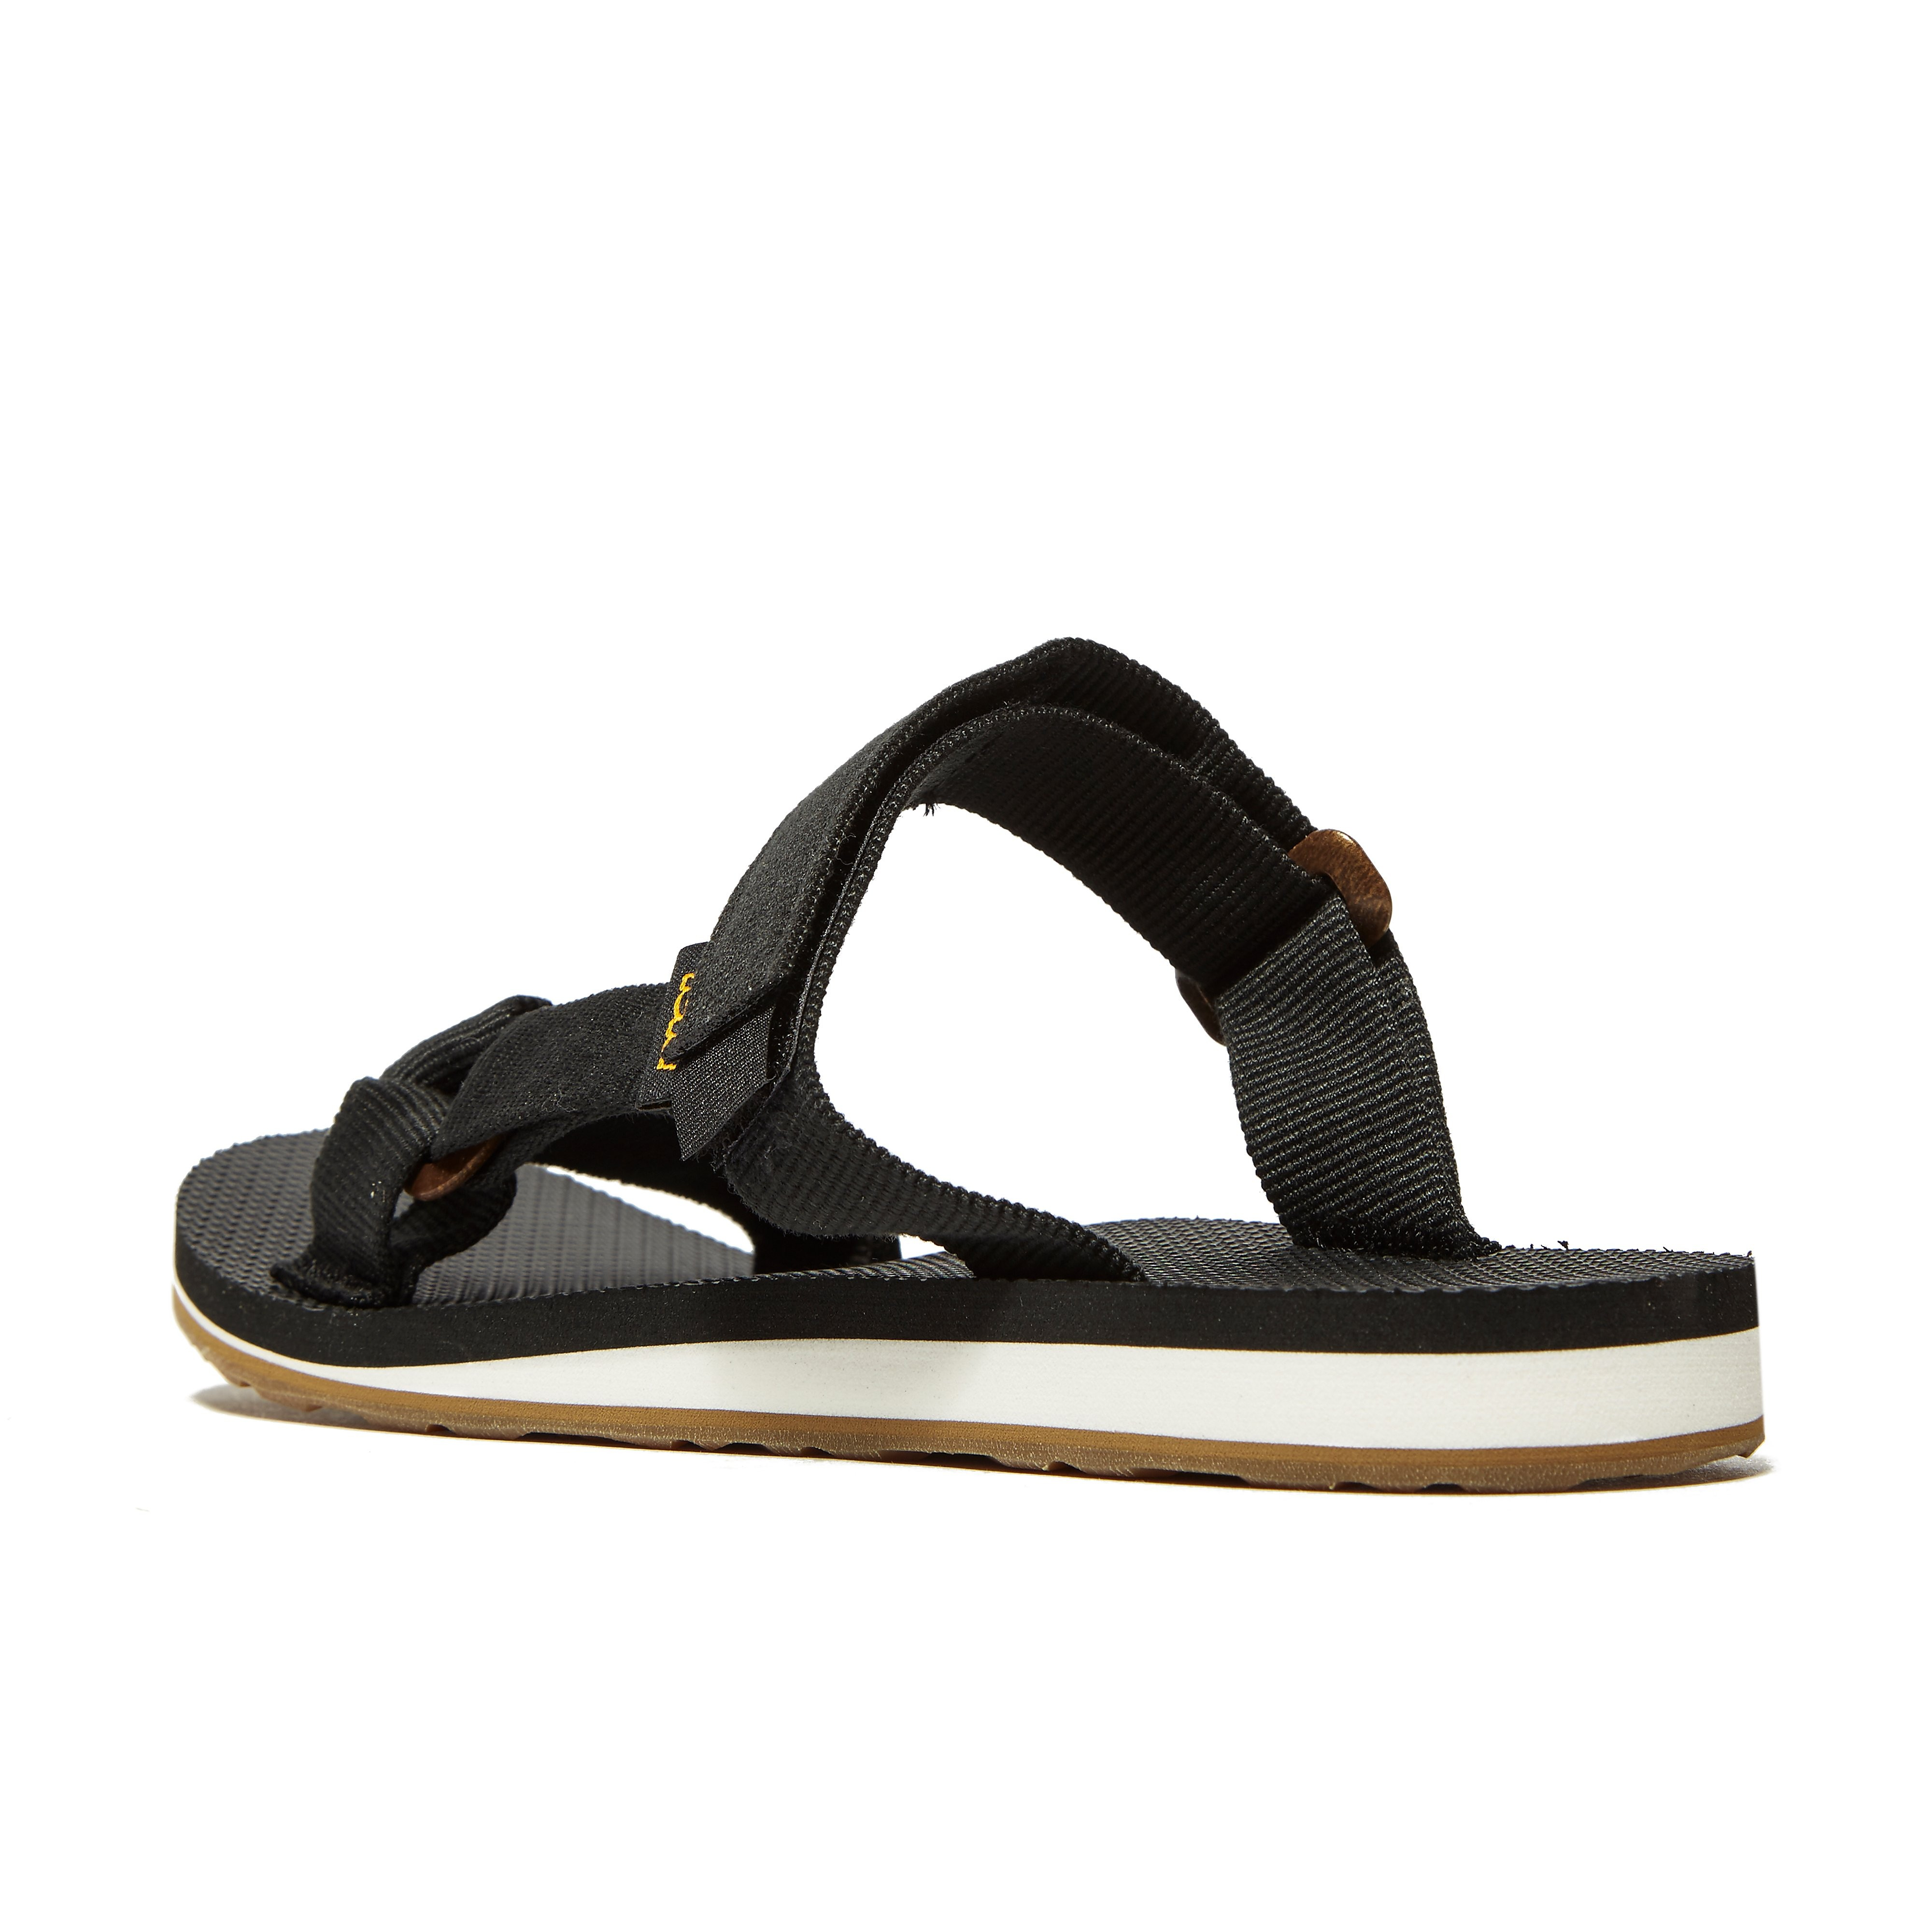 Teva Universal Slide Women's Walking Sandal